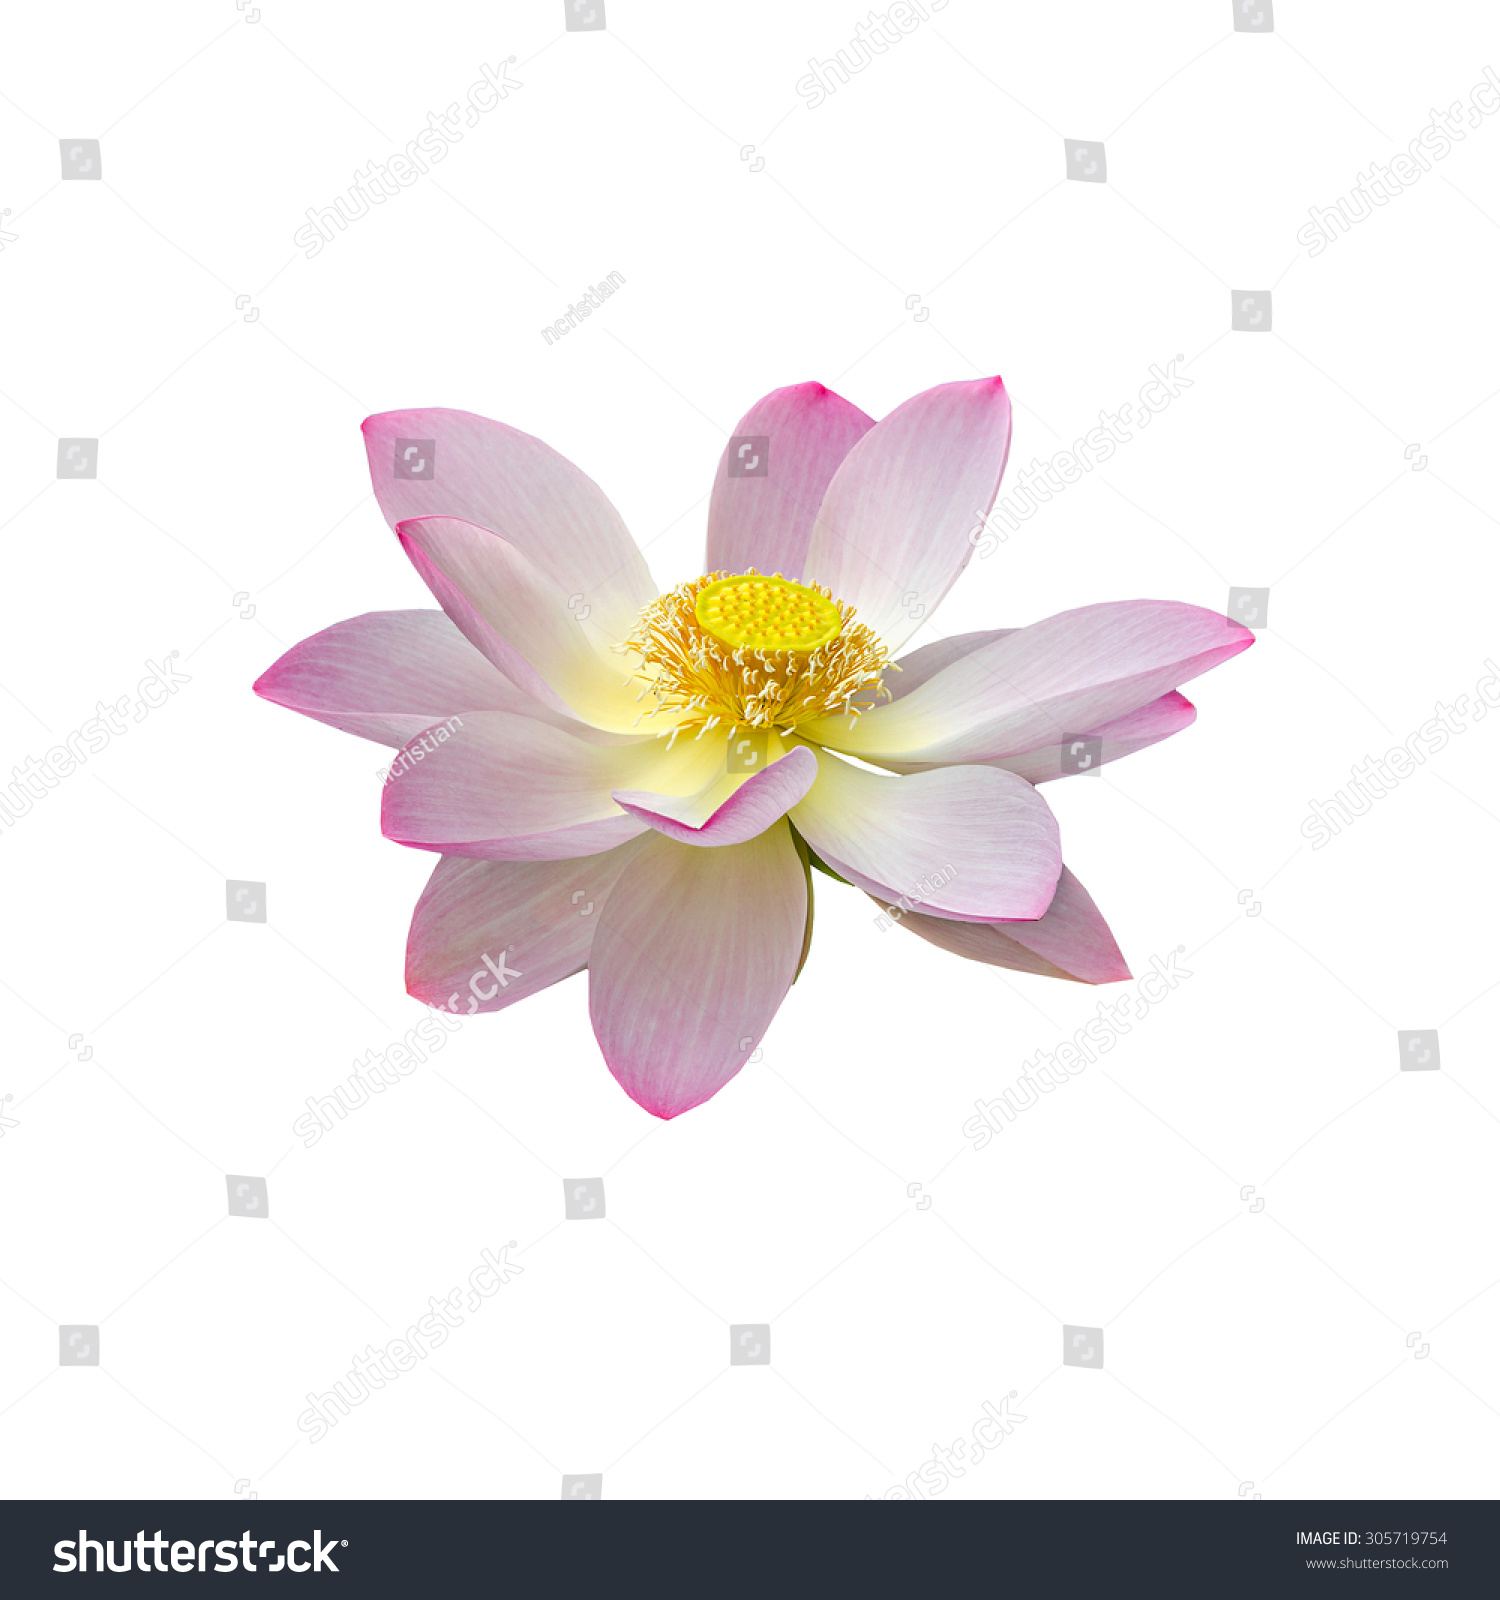 Pink white yellow nuphar flower water lily pond lily id 305719754 izmirmasajfo